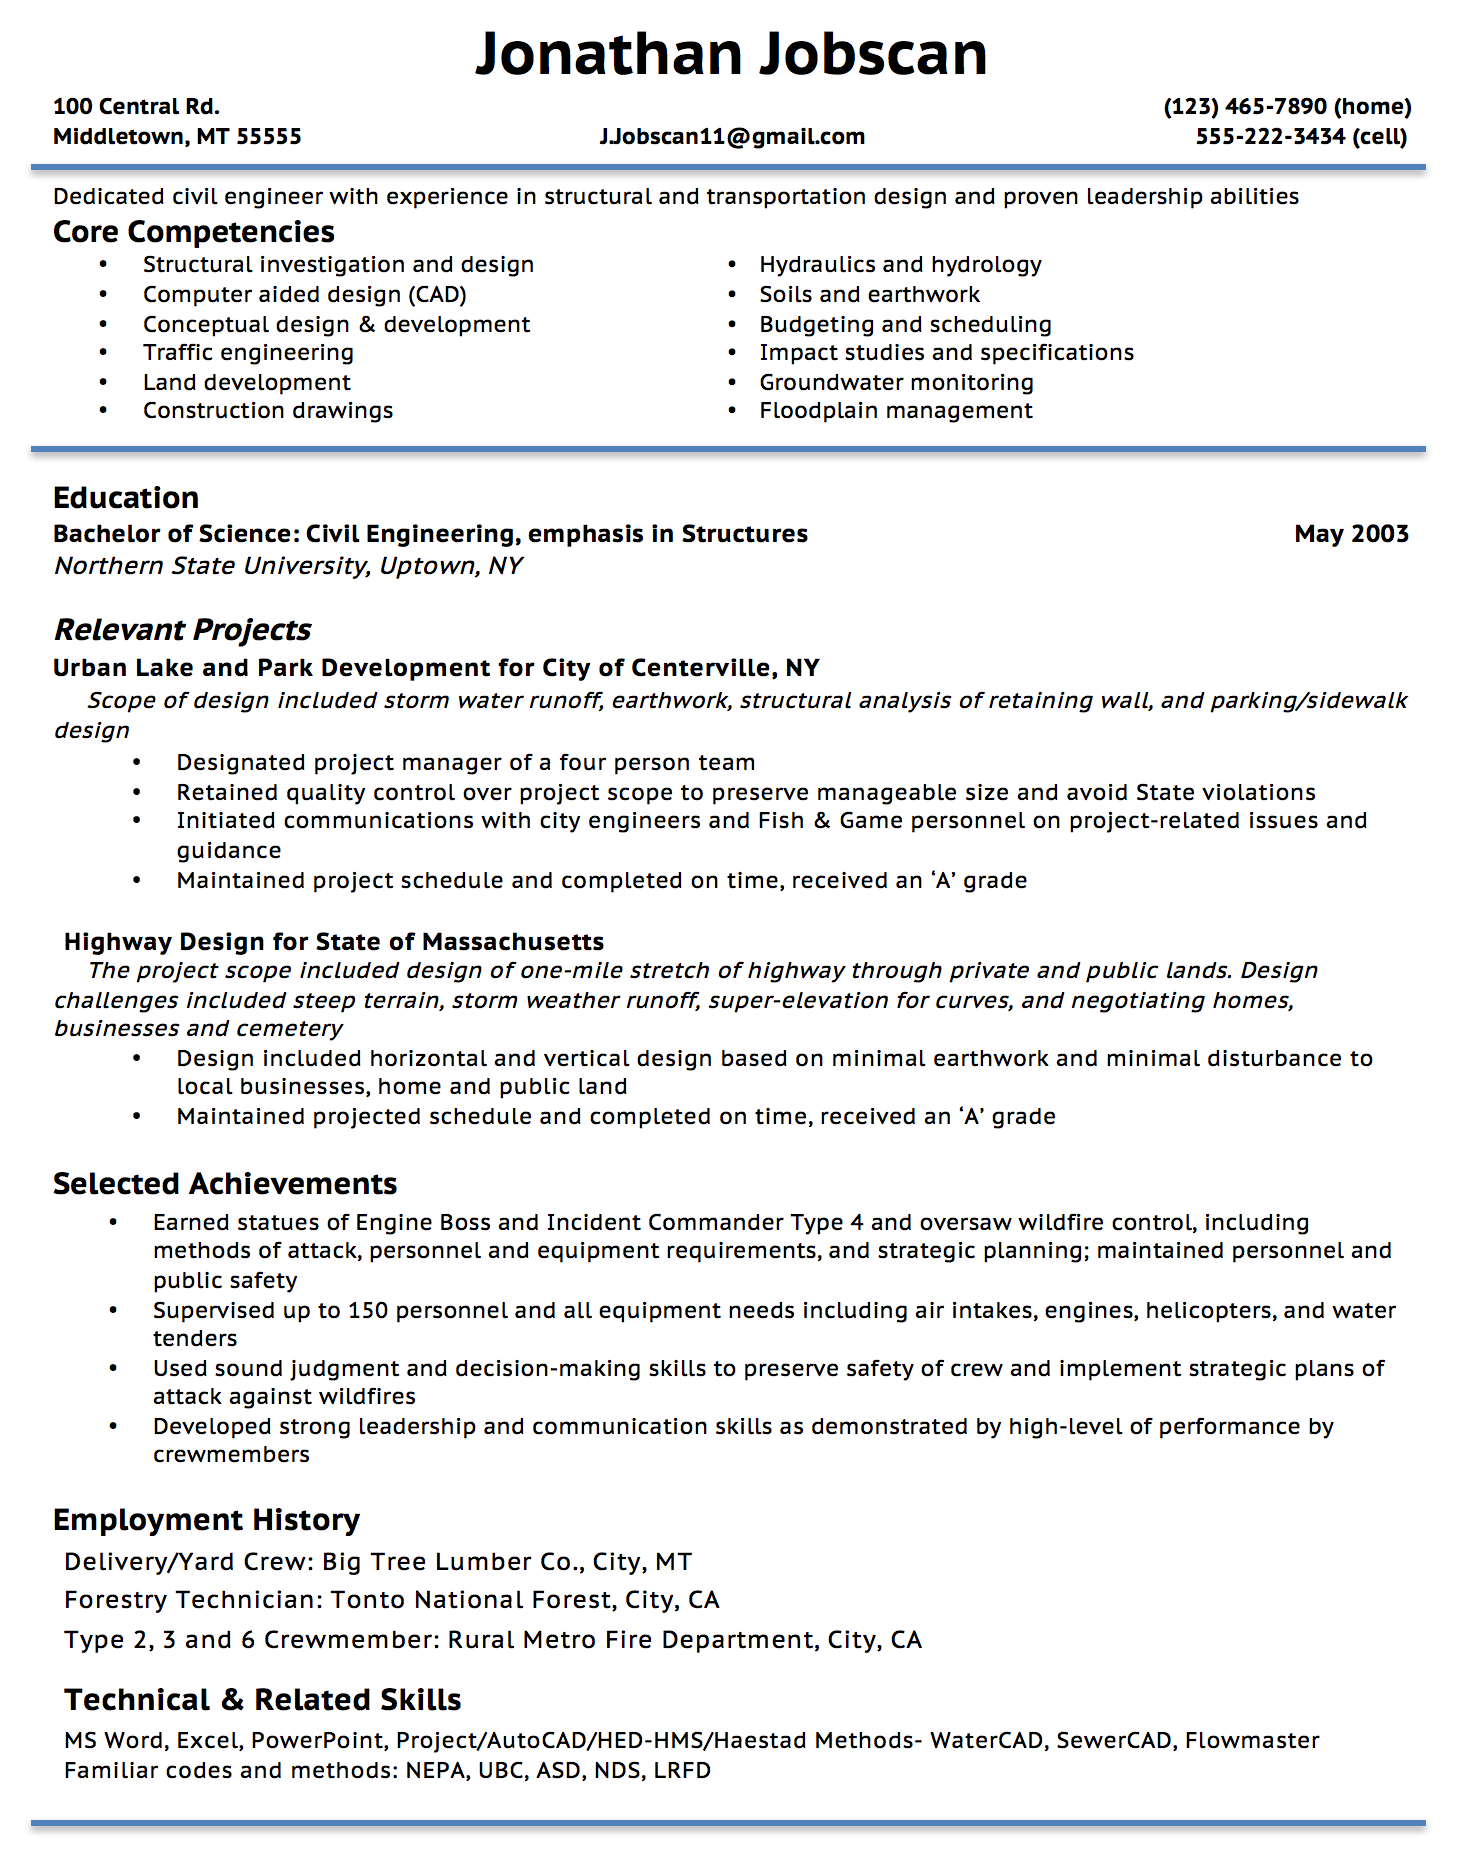 Opposenewapstandardsus  Nice Resume Writing Guide  Jobscan With Gorgeous Example Of A Functional Resume Format With Archaic Should You Put References On A Resume Also Sample Warehouse Resume In Addition Filmmaker Resume And How To Write A Cv Resume As Well As Inventory Control Resume Additionally It Resume Skills From Jobscanco With Opposenewapstandardsus  Gorgeous Resume Writing Guide  Jobscan With Archaic Example Of A Functional Resume Format And Nice Should You Put References On A Resume Also Sample Warehouse Resume In Addition Filmmaker Resume From Jobscanco